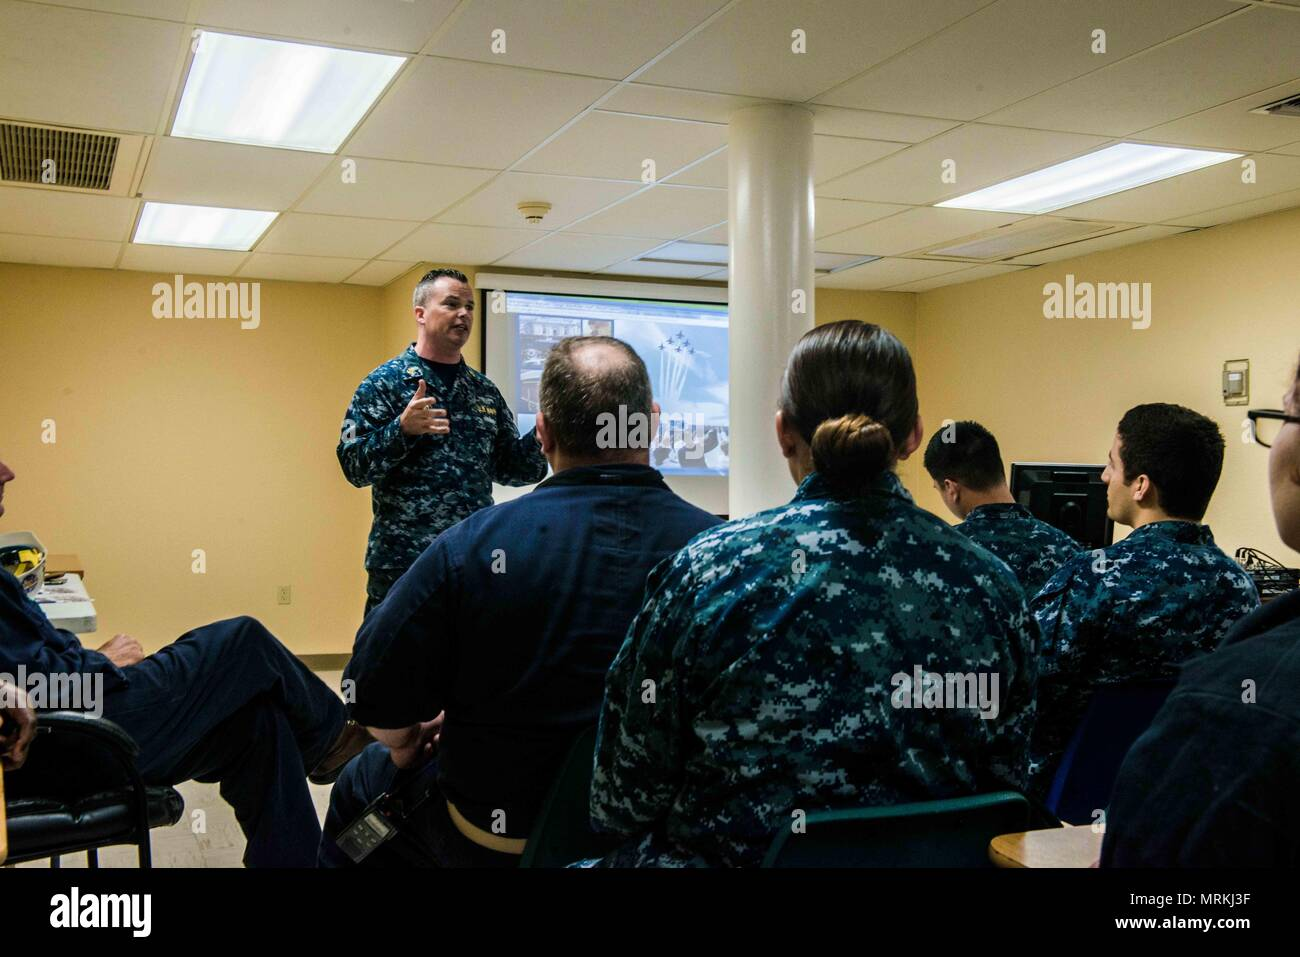 USNA ADMISSIONS - March To Do List for USNA Applicants